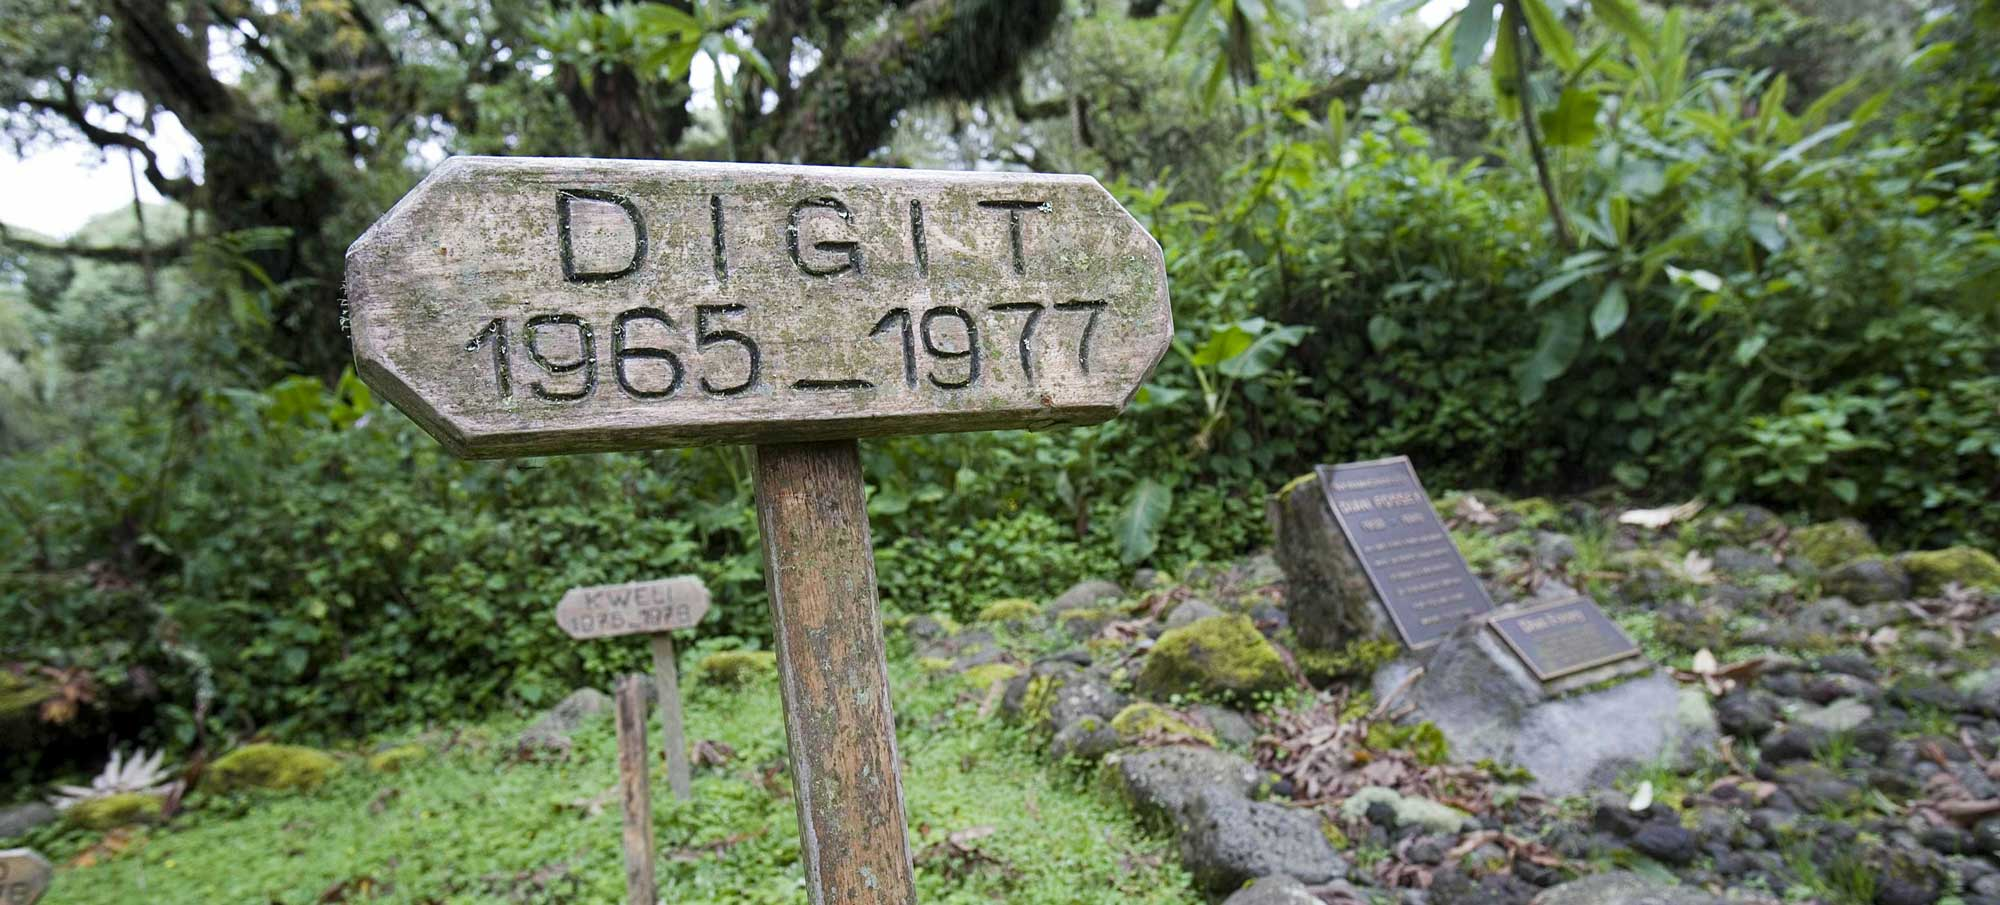 Dian Fossey is buried next to the grave of her favourite gorilla Digit